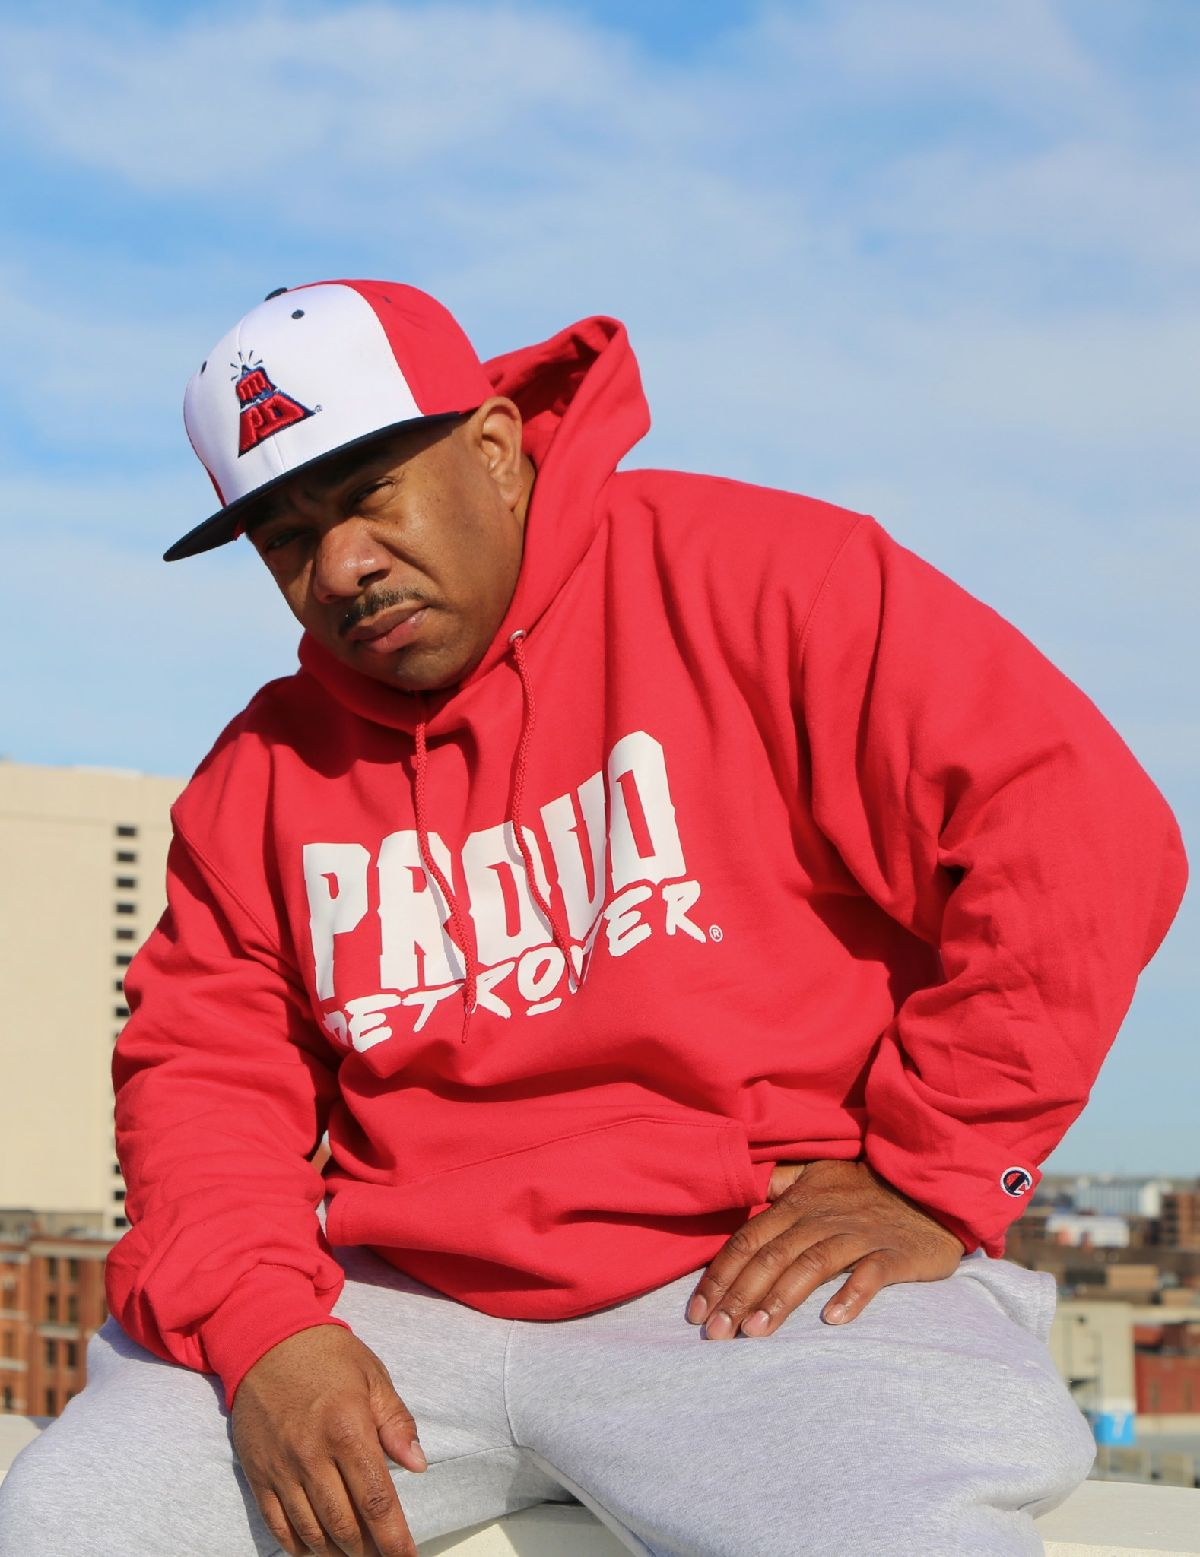 Proud Detroiter Hoodie and Hat